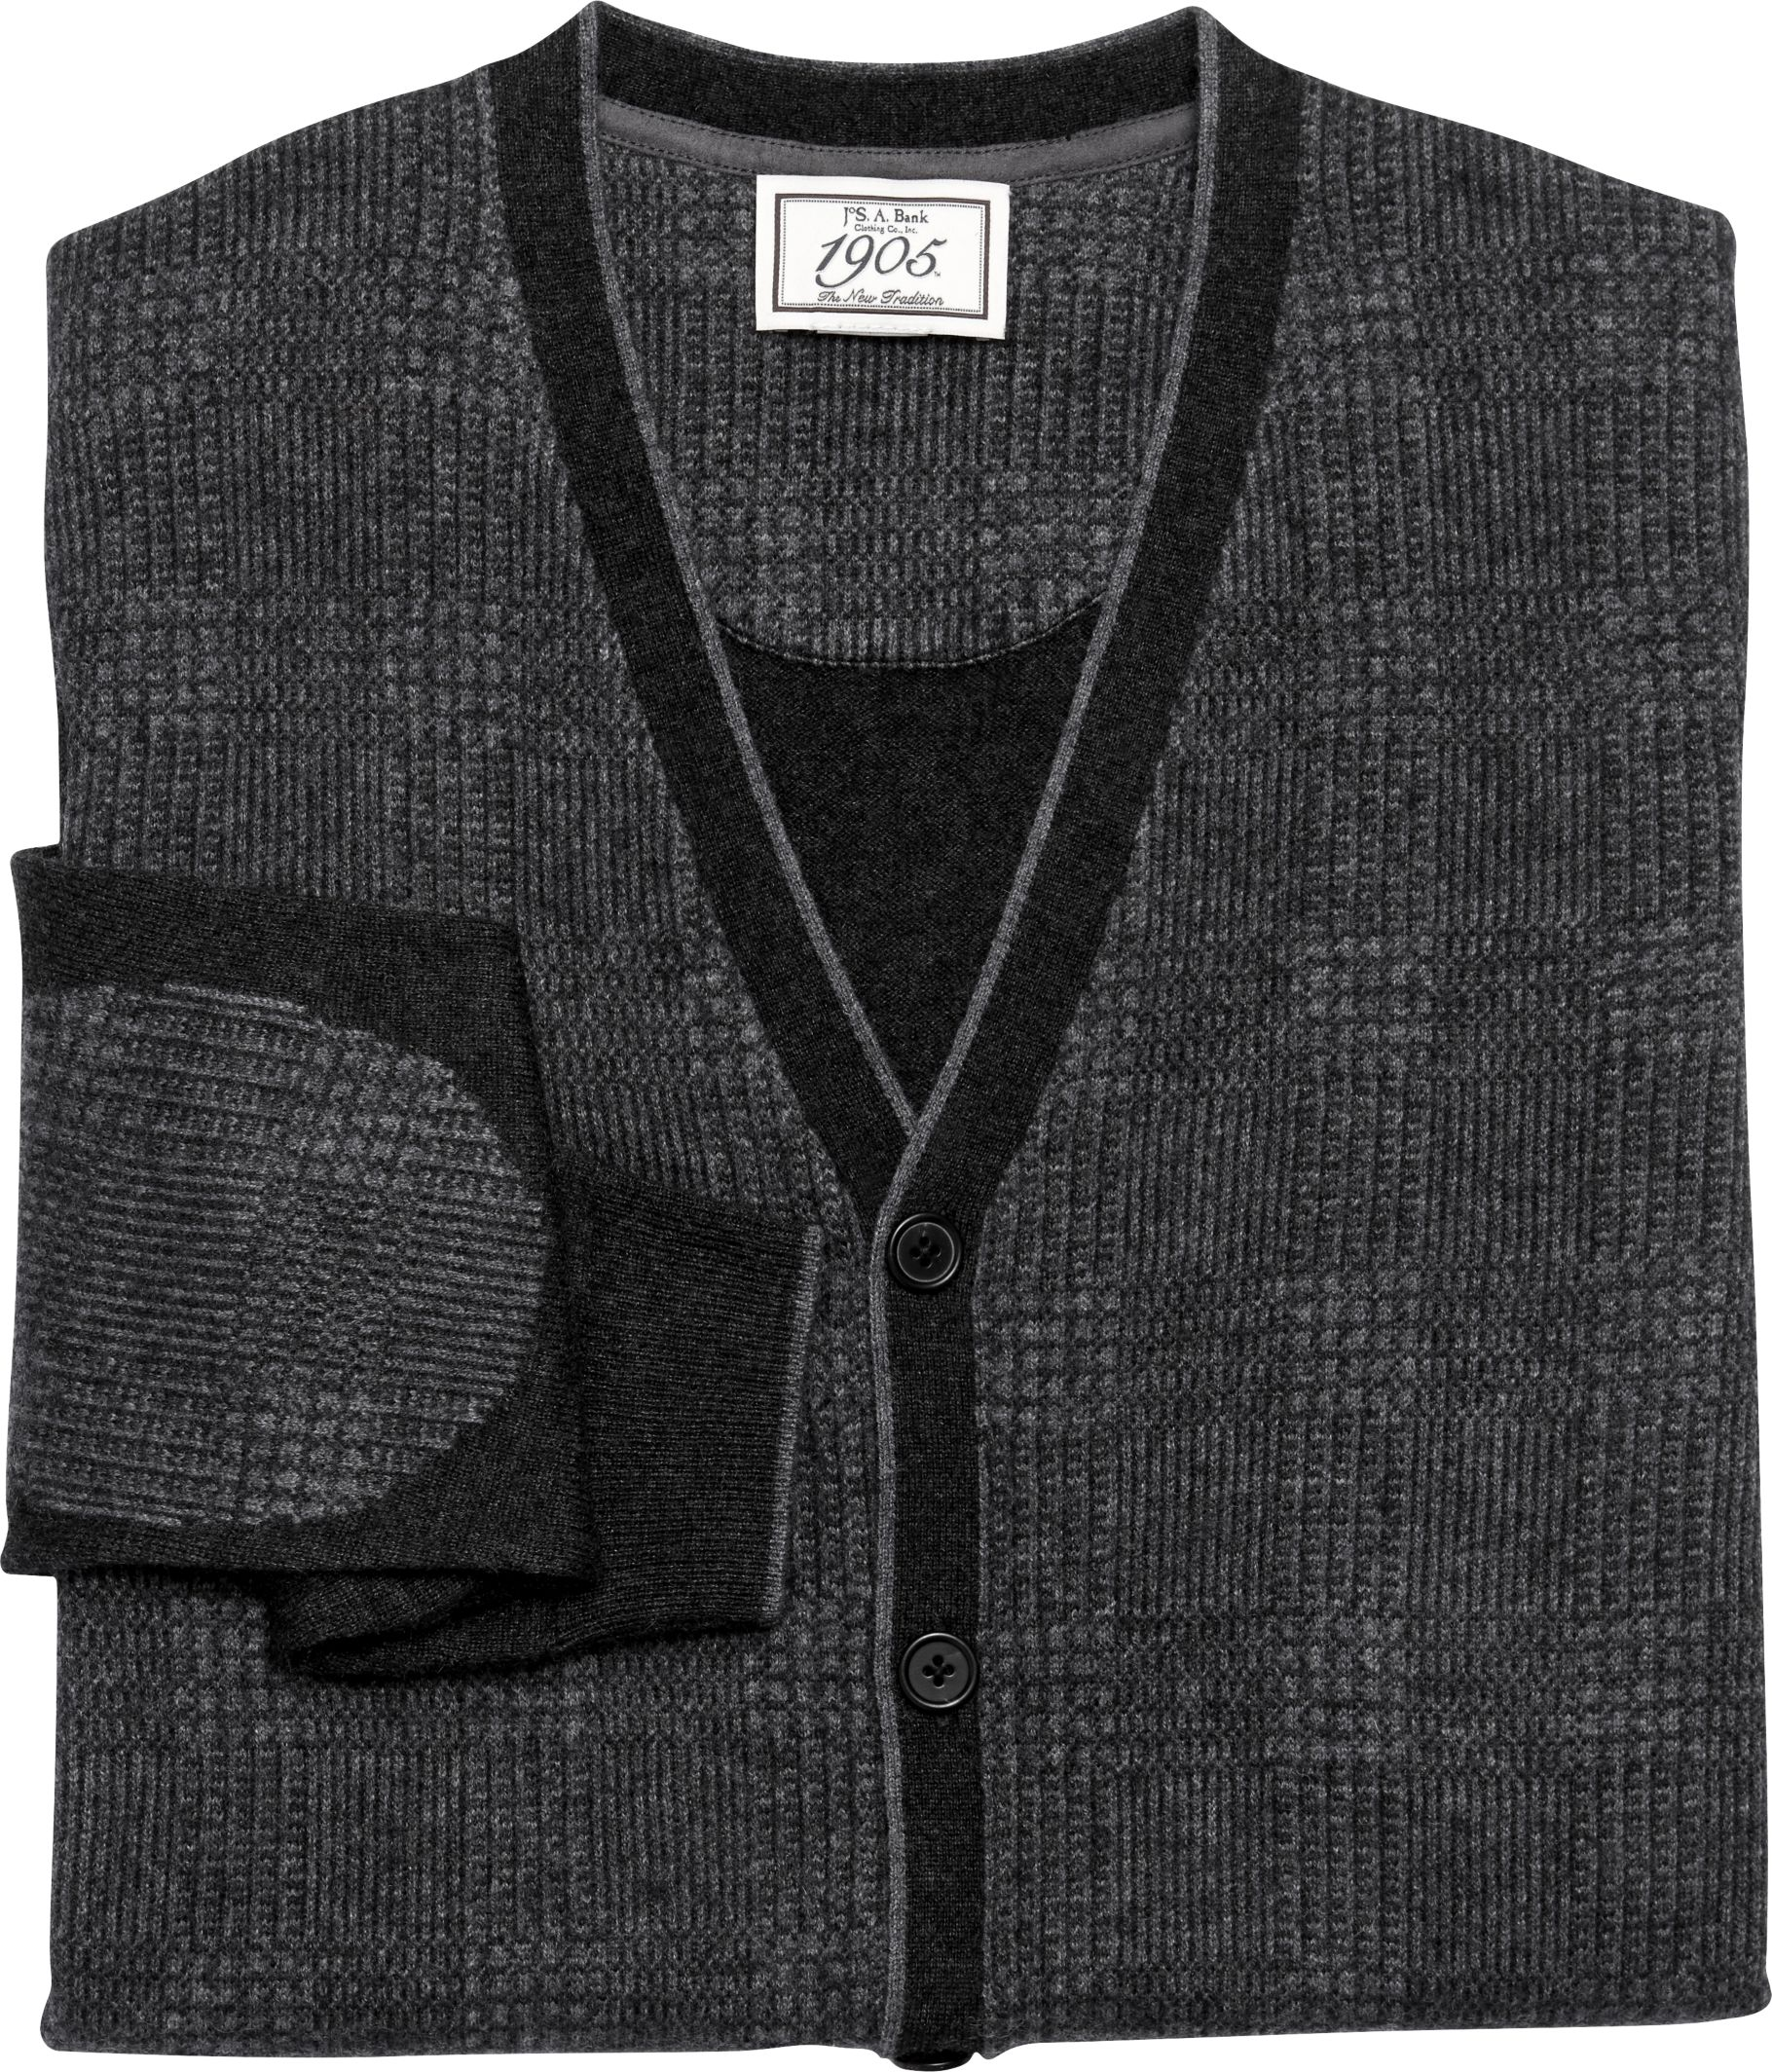 1905 Collection Wool Blend Plaid Cardigan Sweater CLEARANCE - All ...